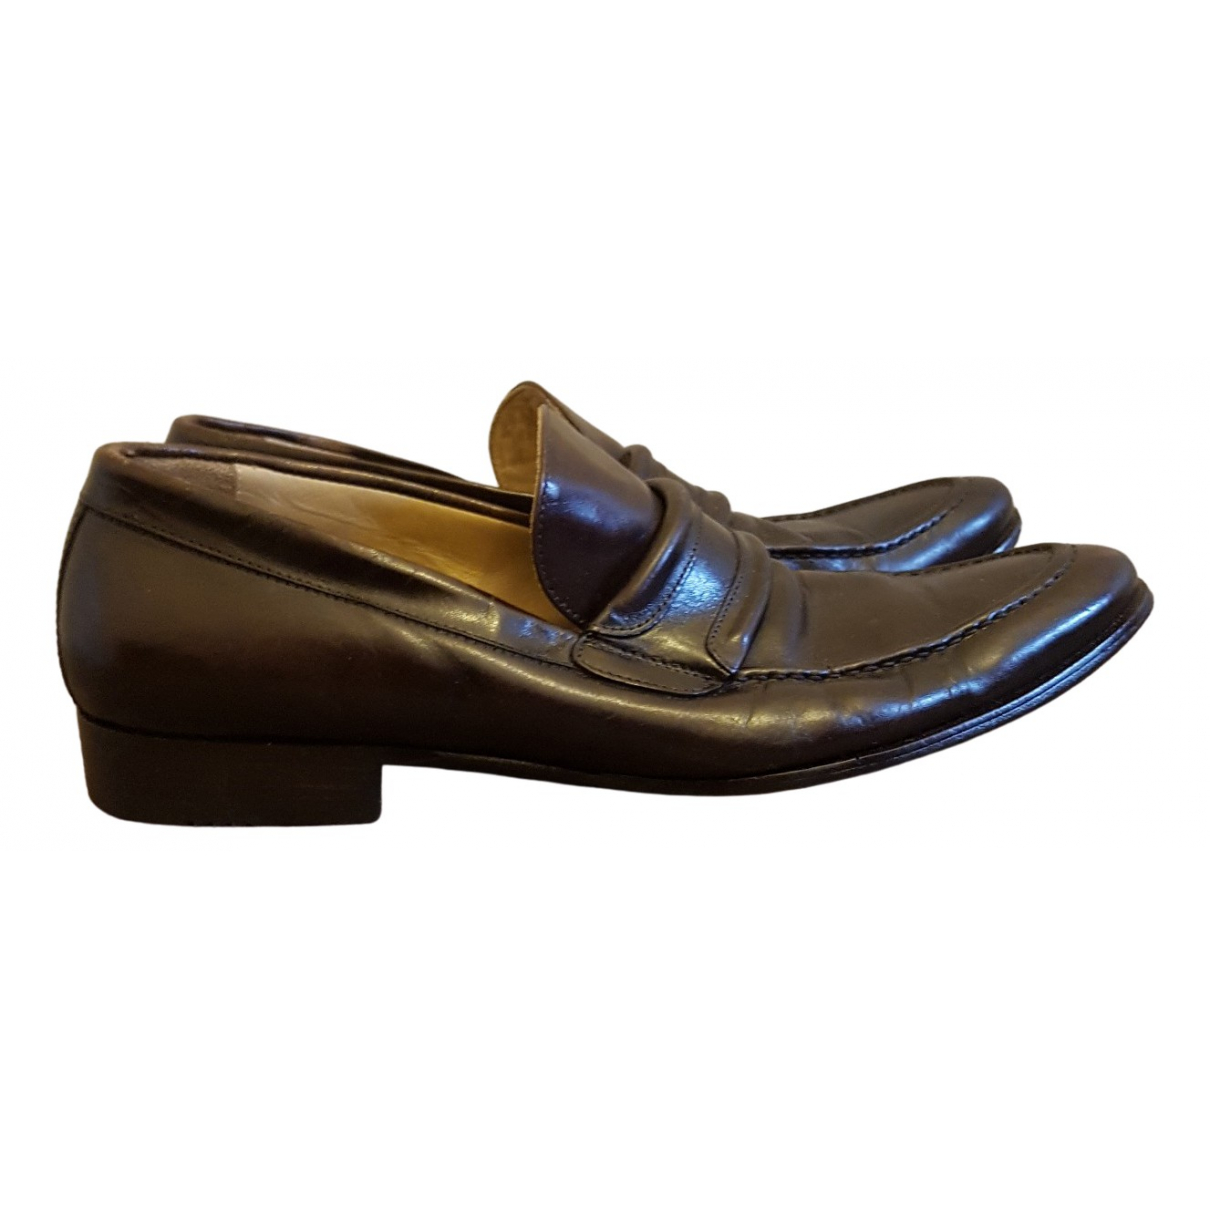 D&g \N Brown Leather Flats for Men 42 EU